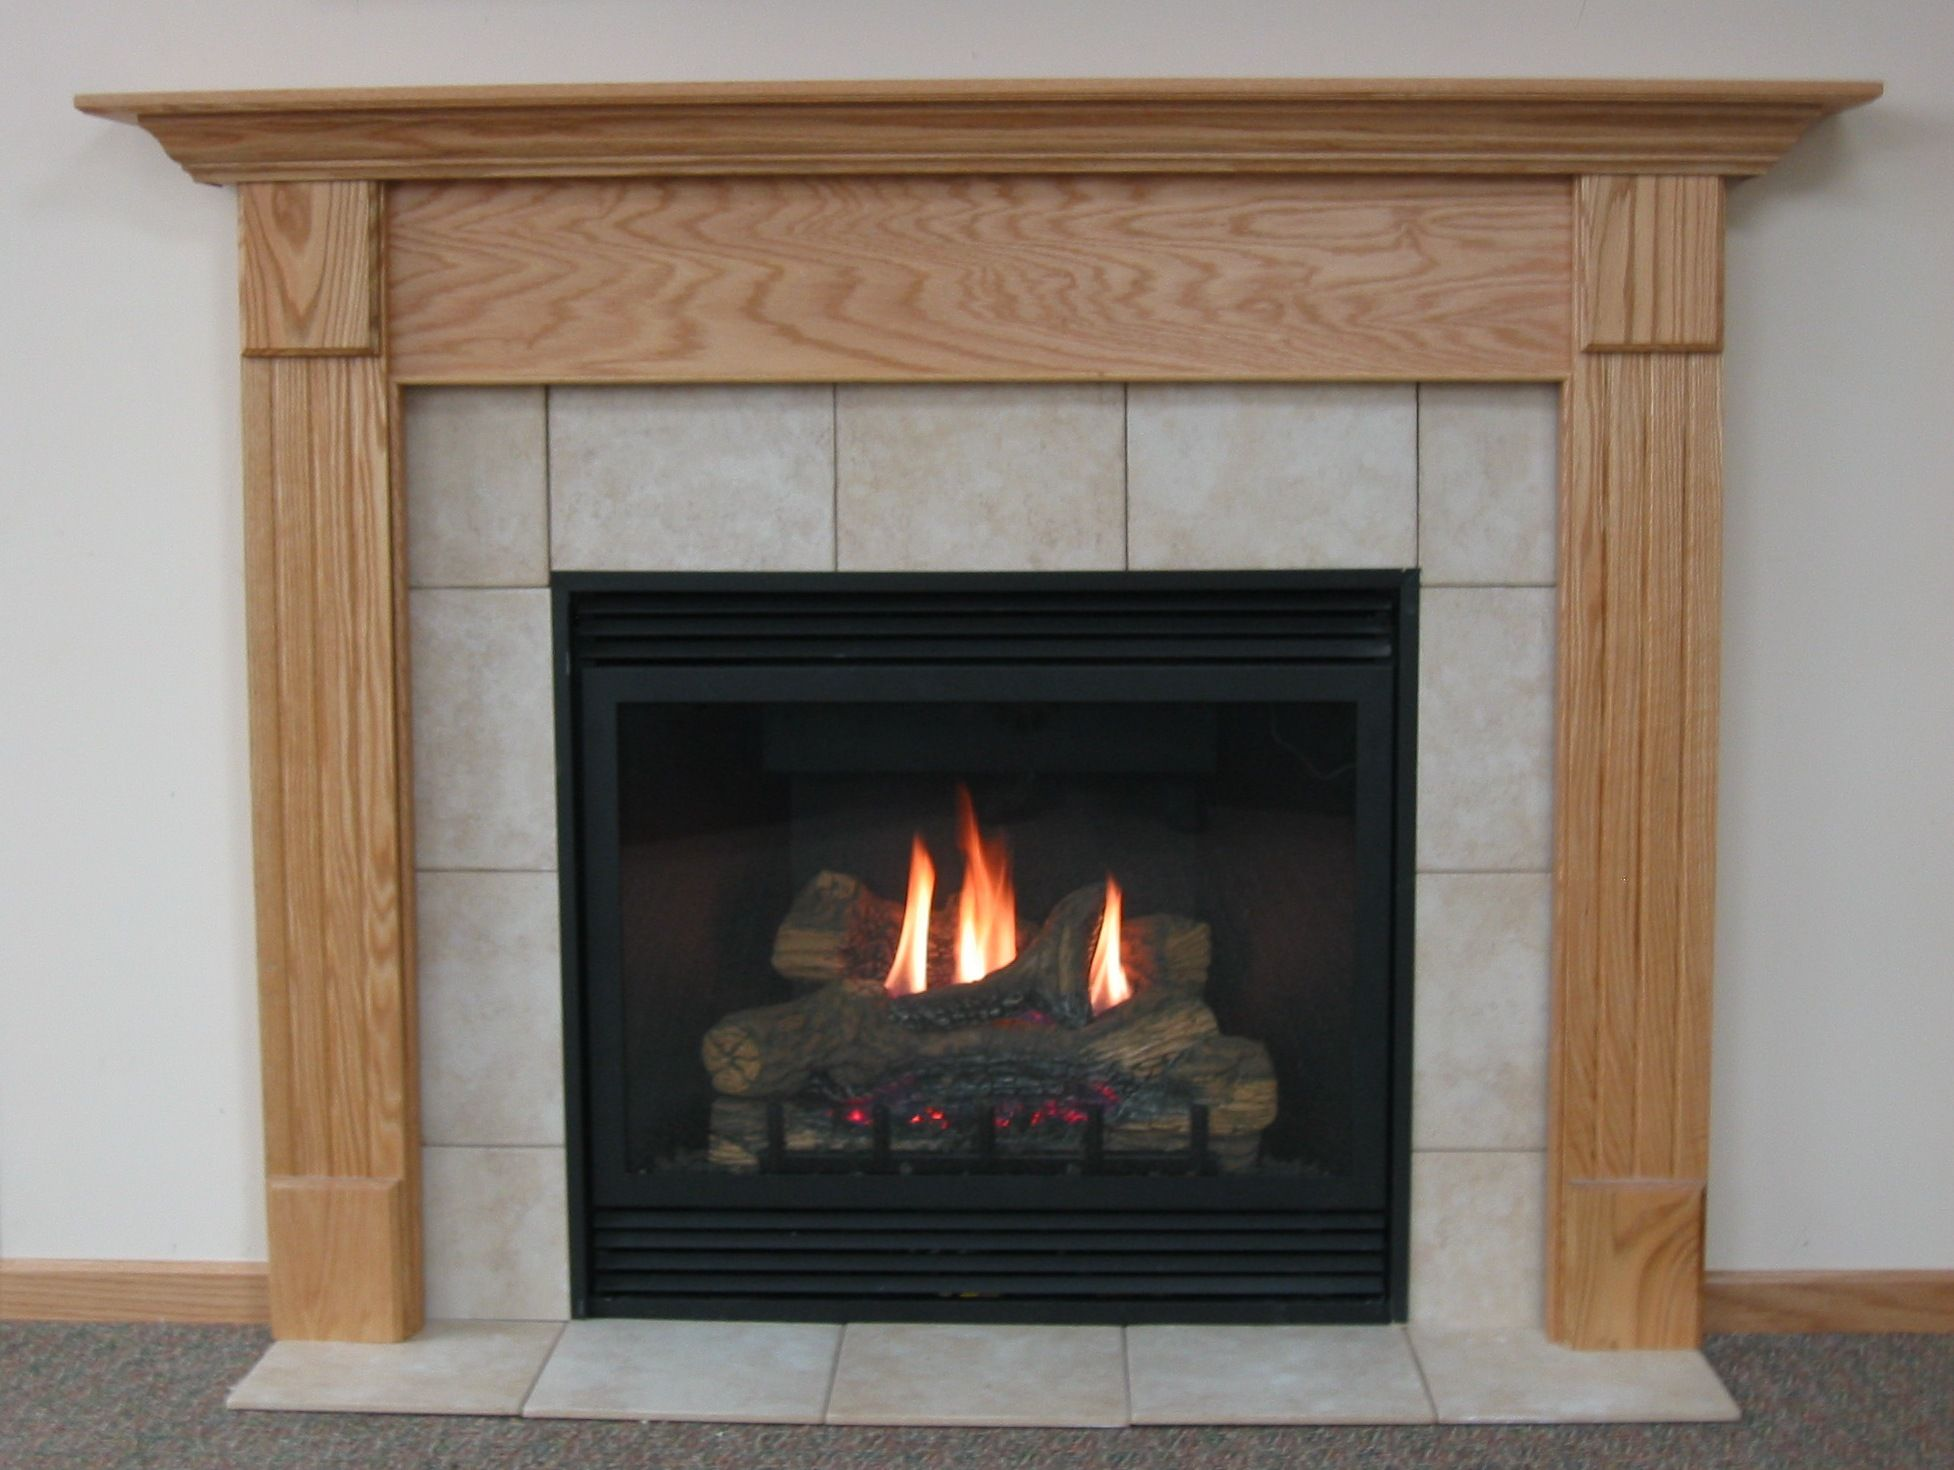 Fireplace inserts and Living rooms